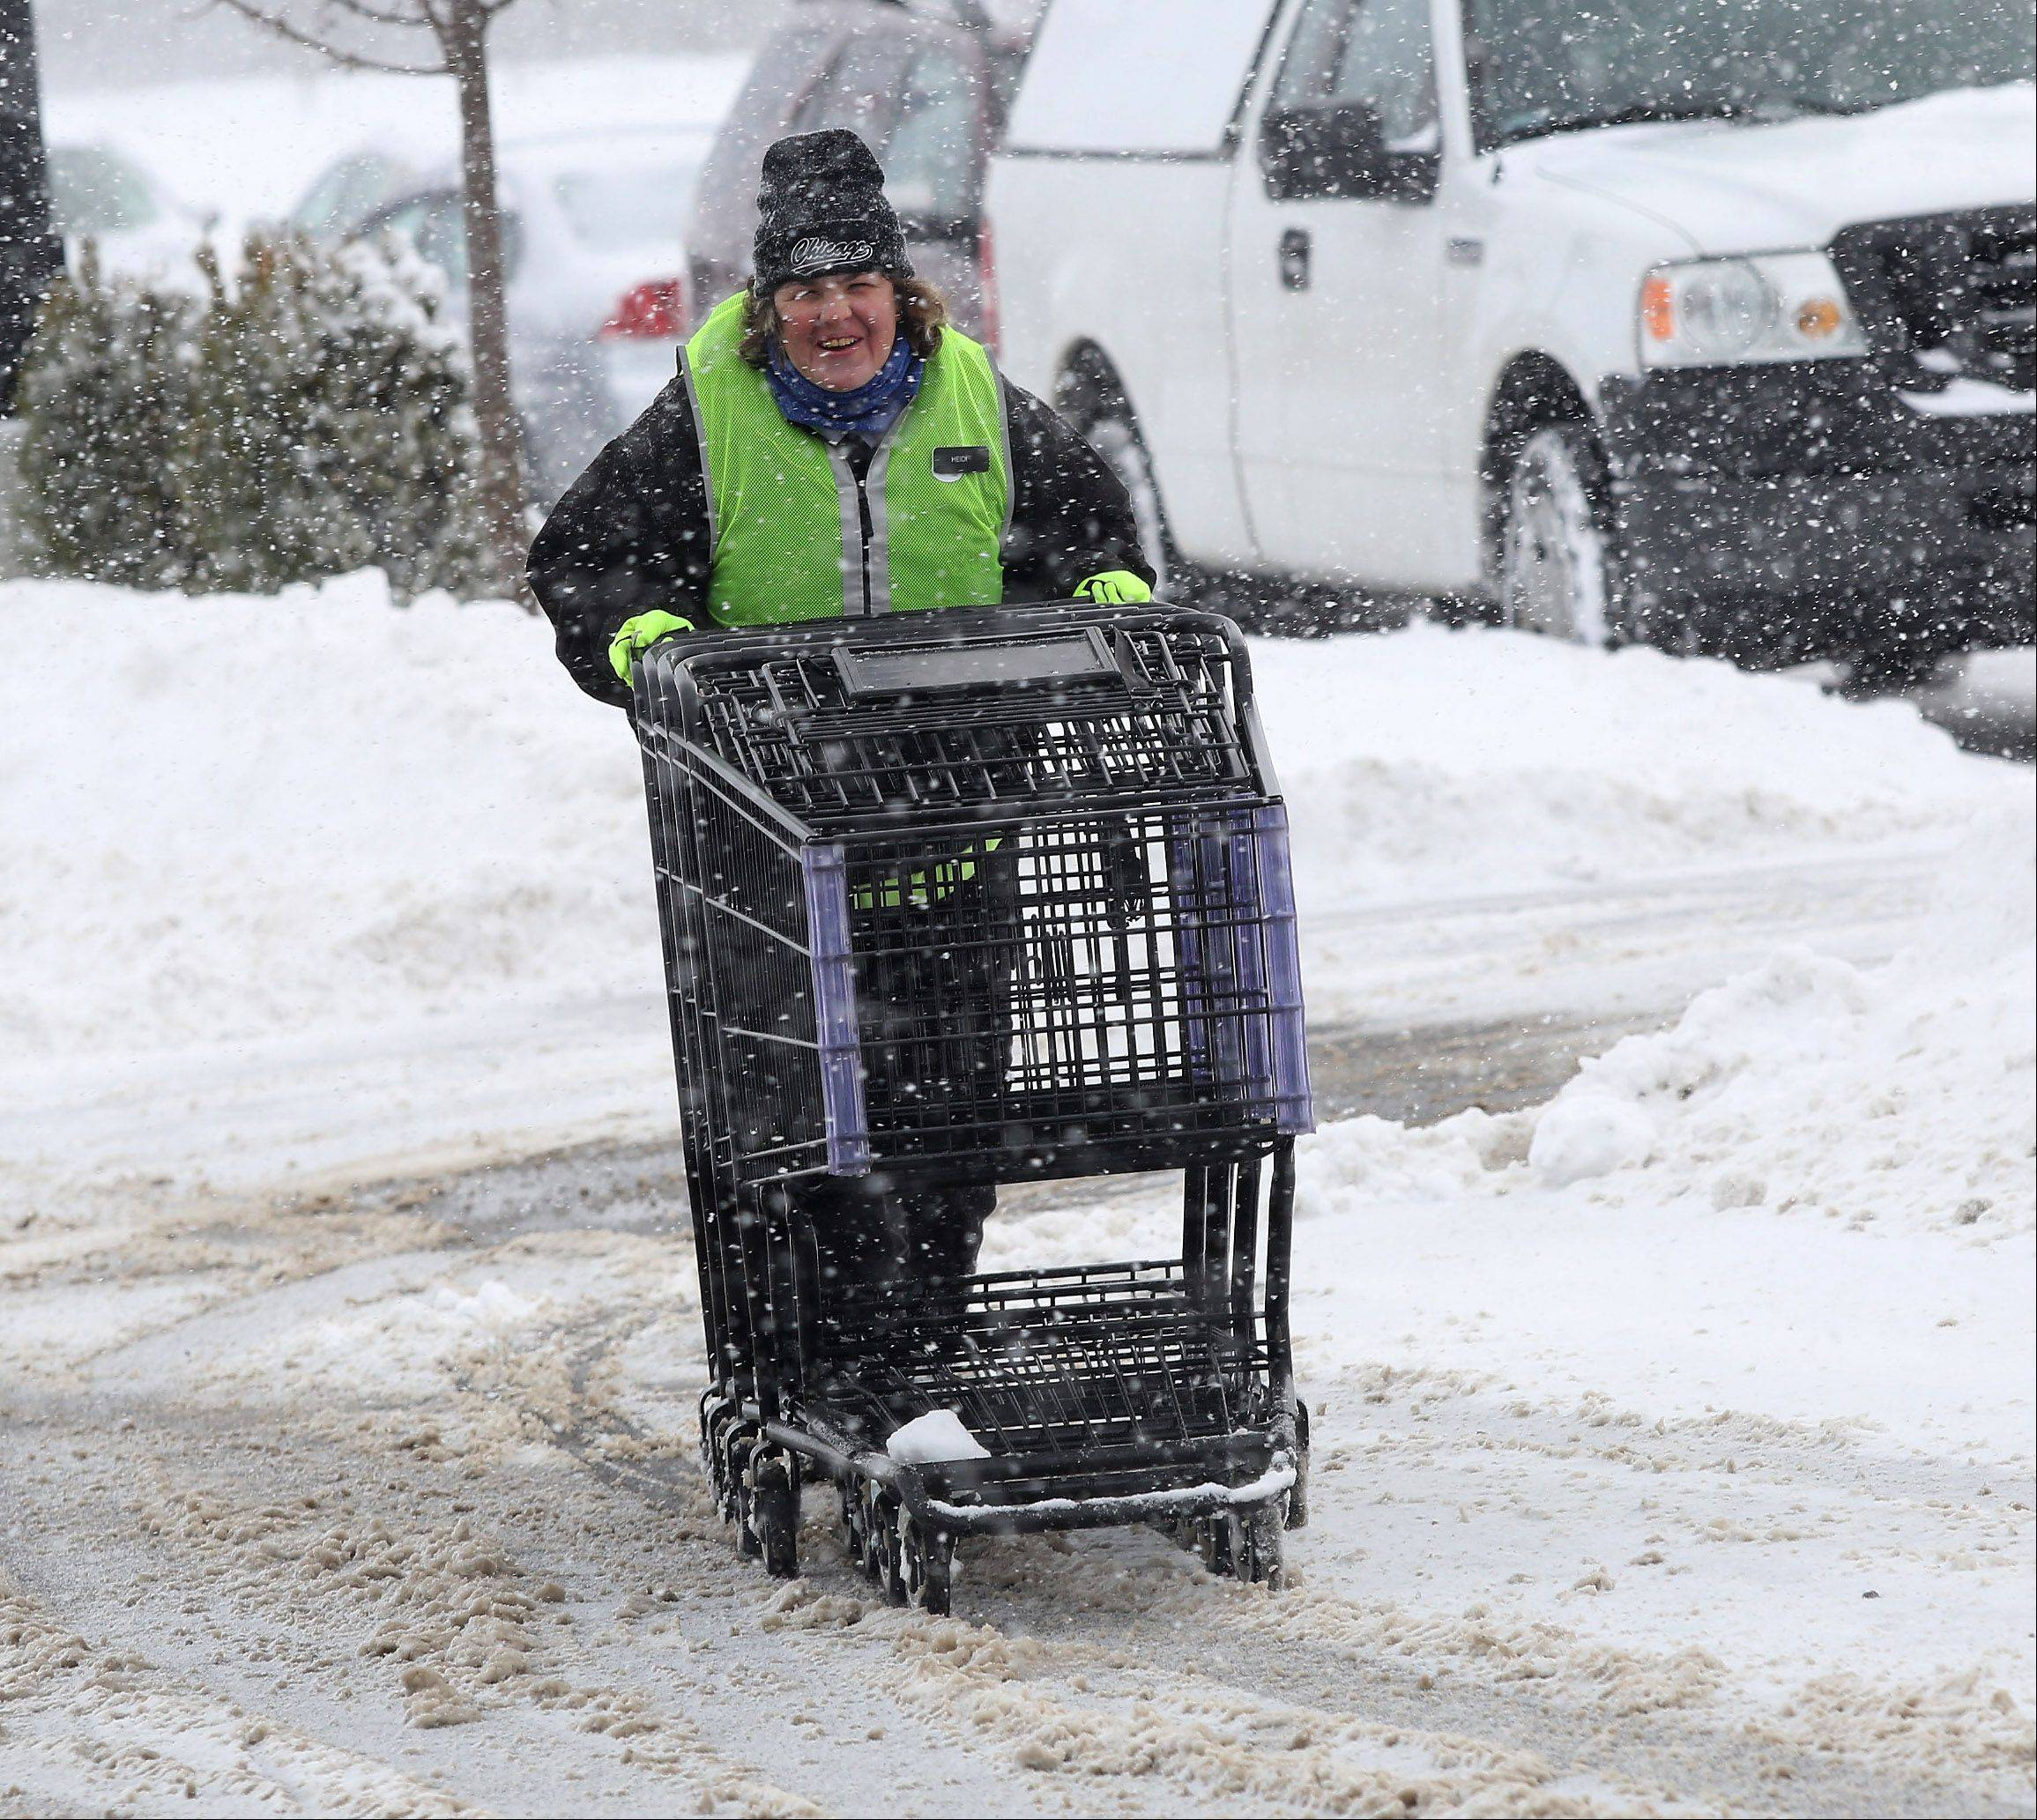 Mariano's grocery store employee Heidi Snodie pushes carts in the snow at the new store in Lake Zurich on Wednesday. The overnight snowstorm forced area residents to once again dig out their driveways and face morning traffic problems on commutes to work and school.